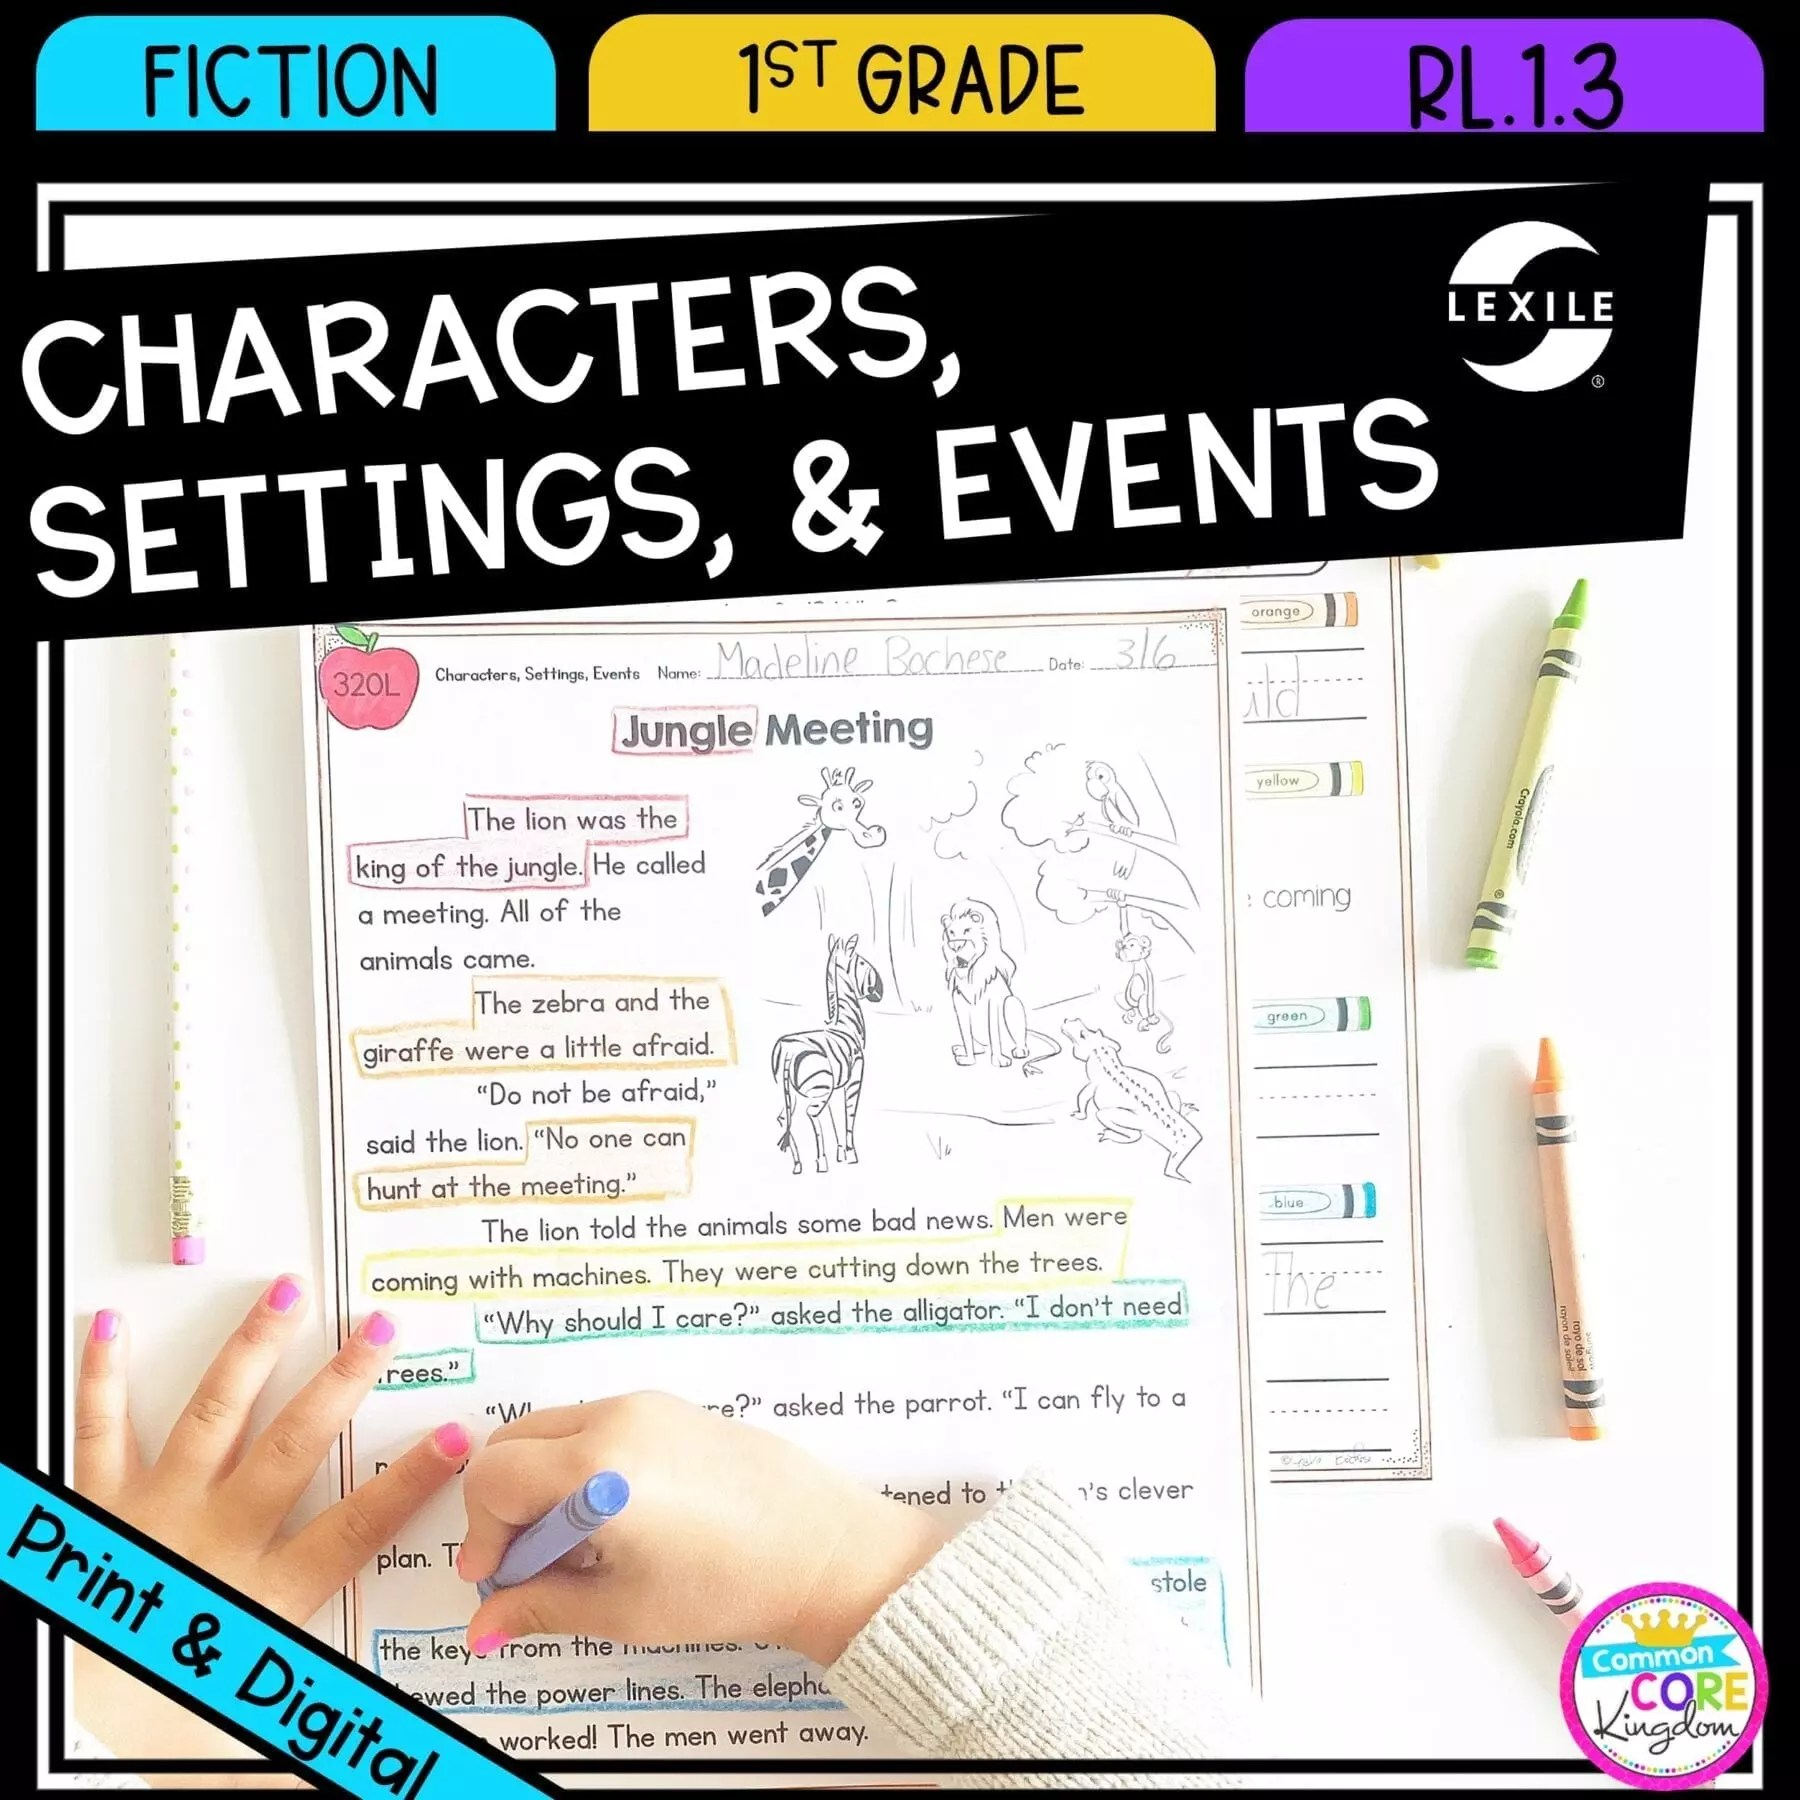 small resolution of Characters Settings and Events - 1st Grade RL.1.3 Printable \u0026 Digital  Google Slides Distance Learning Pack   Common Core Kingdom